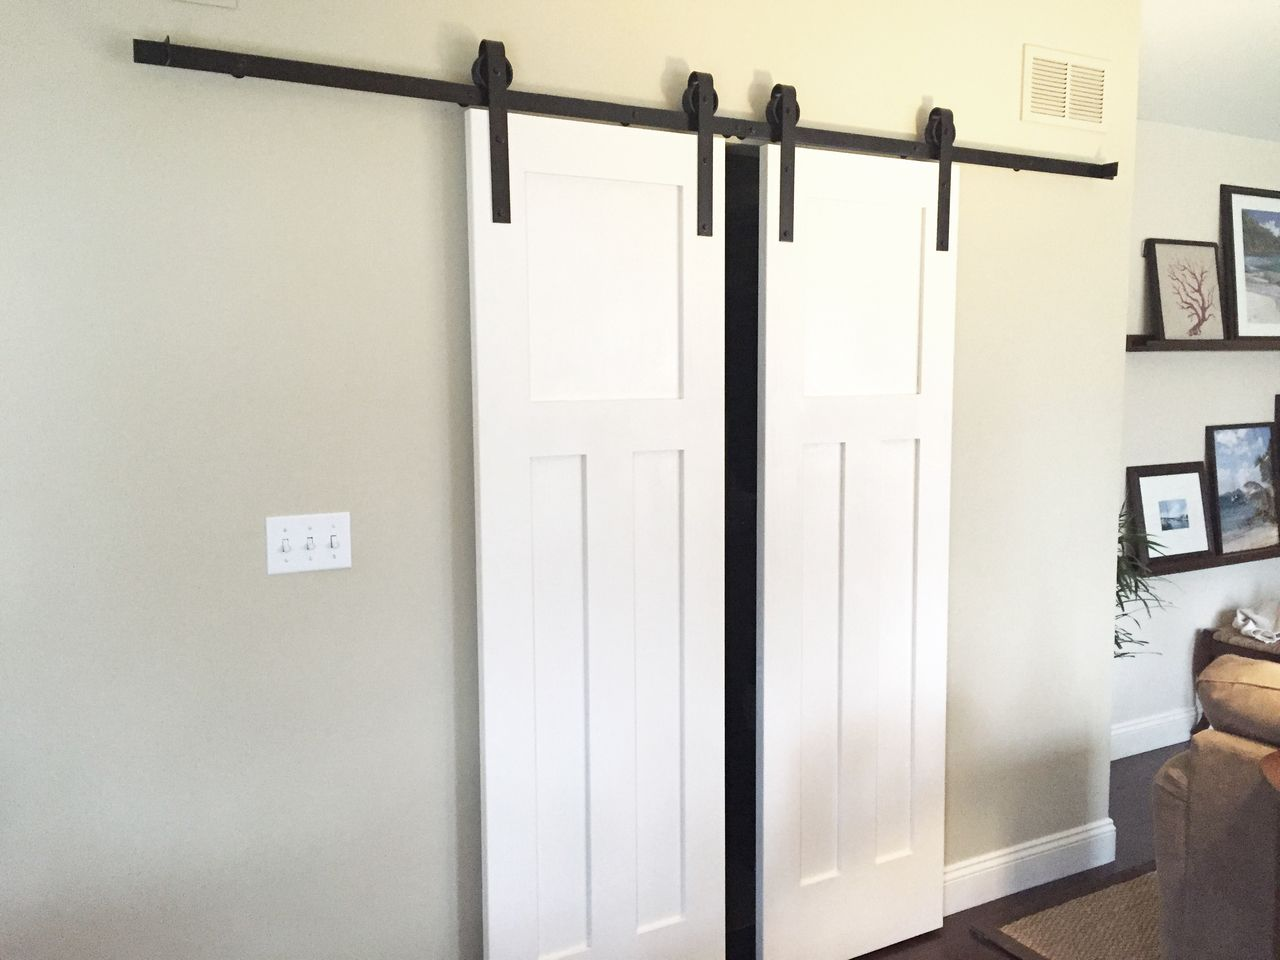 Double Sliding Barn Door Hardware Kit For Two Doors With 12 Feet Track 144 Made In Usa The Barn Door Hard Interior Barn Doors Barn Door Barn Doors Sliding